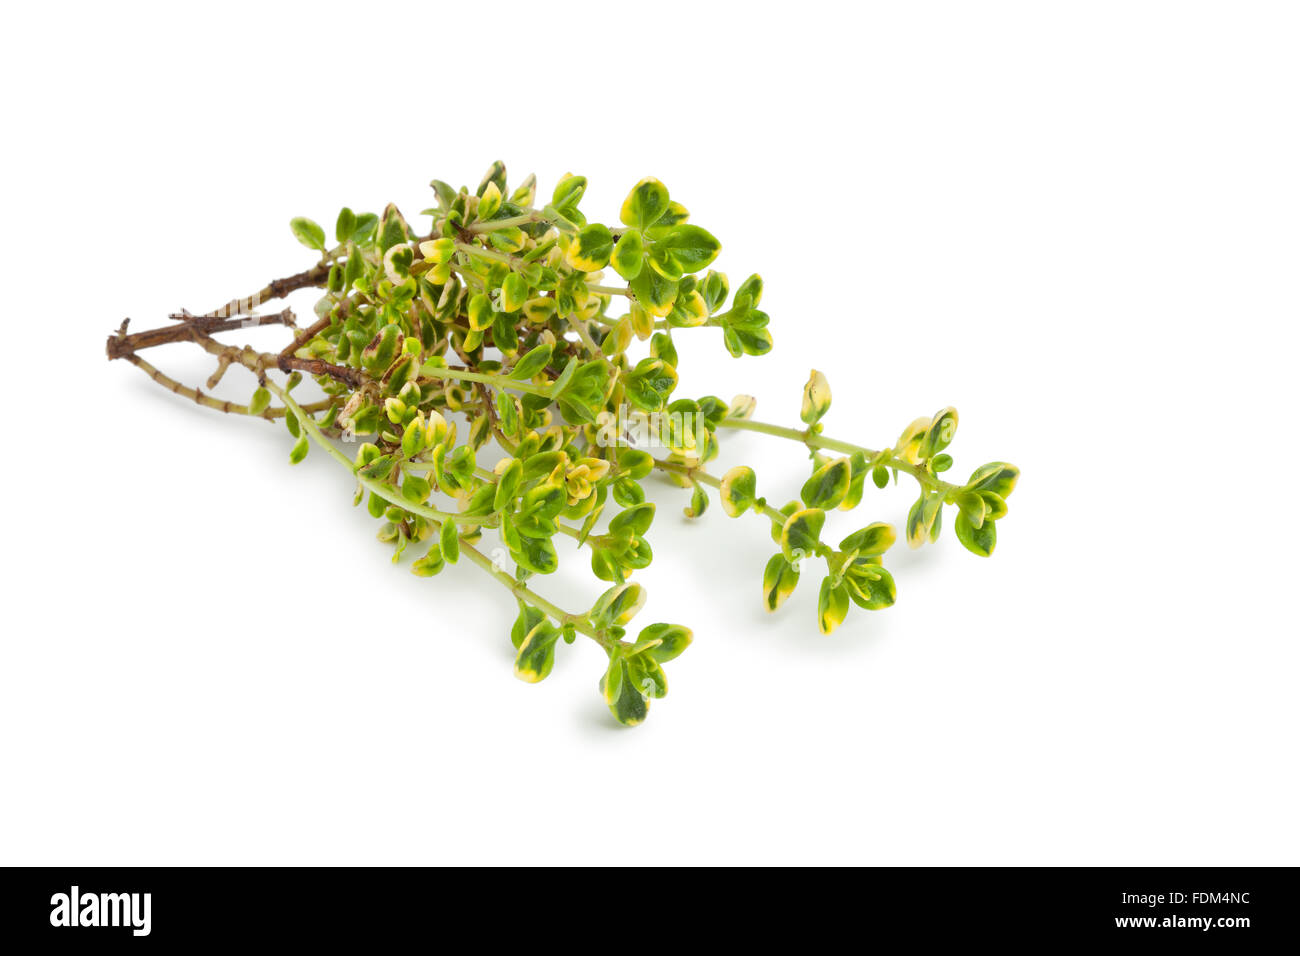 Twig of fresh lemon thyme on white background - Stock Image